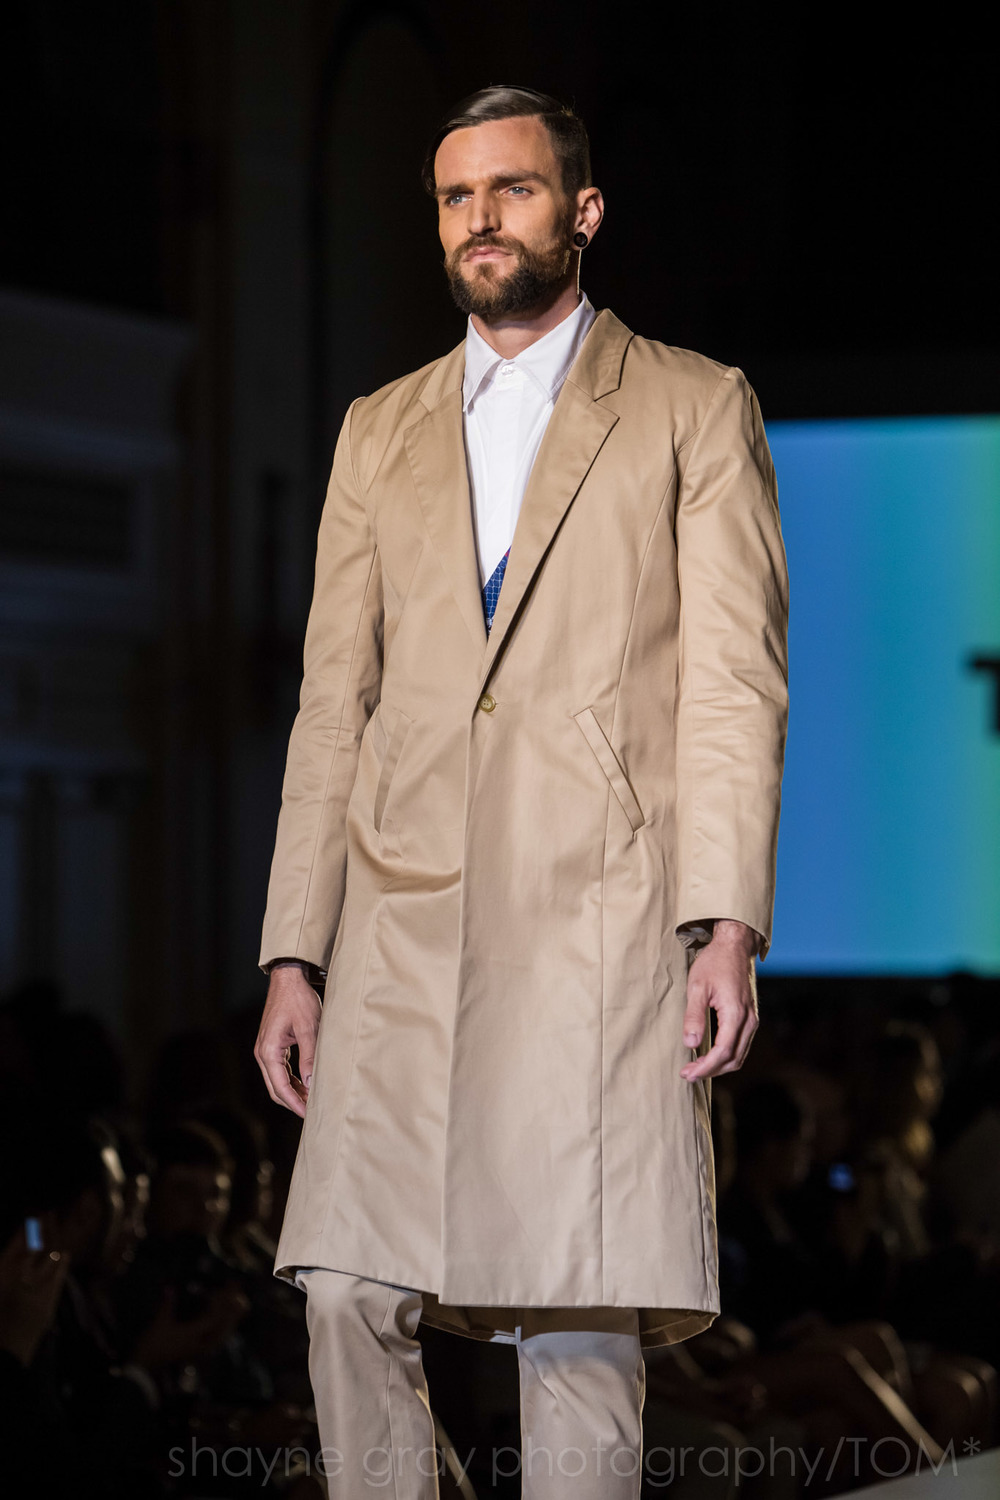 Shayne-Gray-Toronto-men's-fashion_week-TOM-paul-nathaphol-7983.jpg